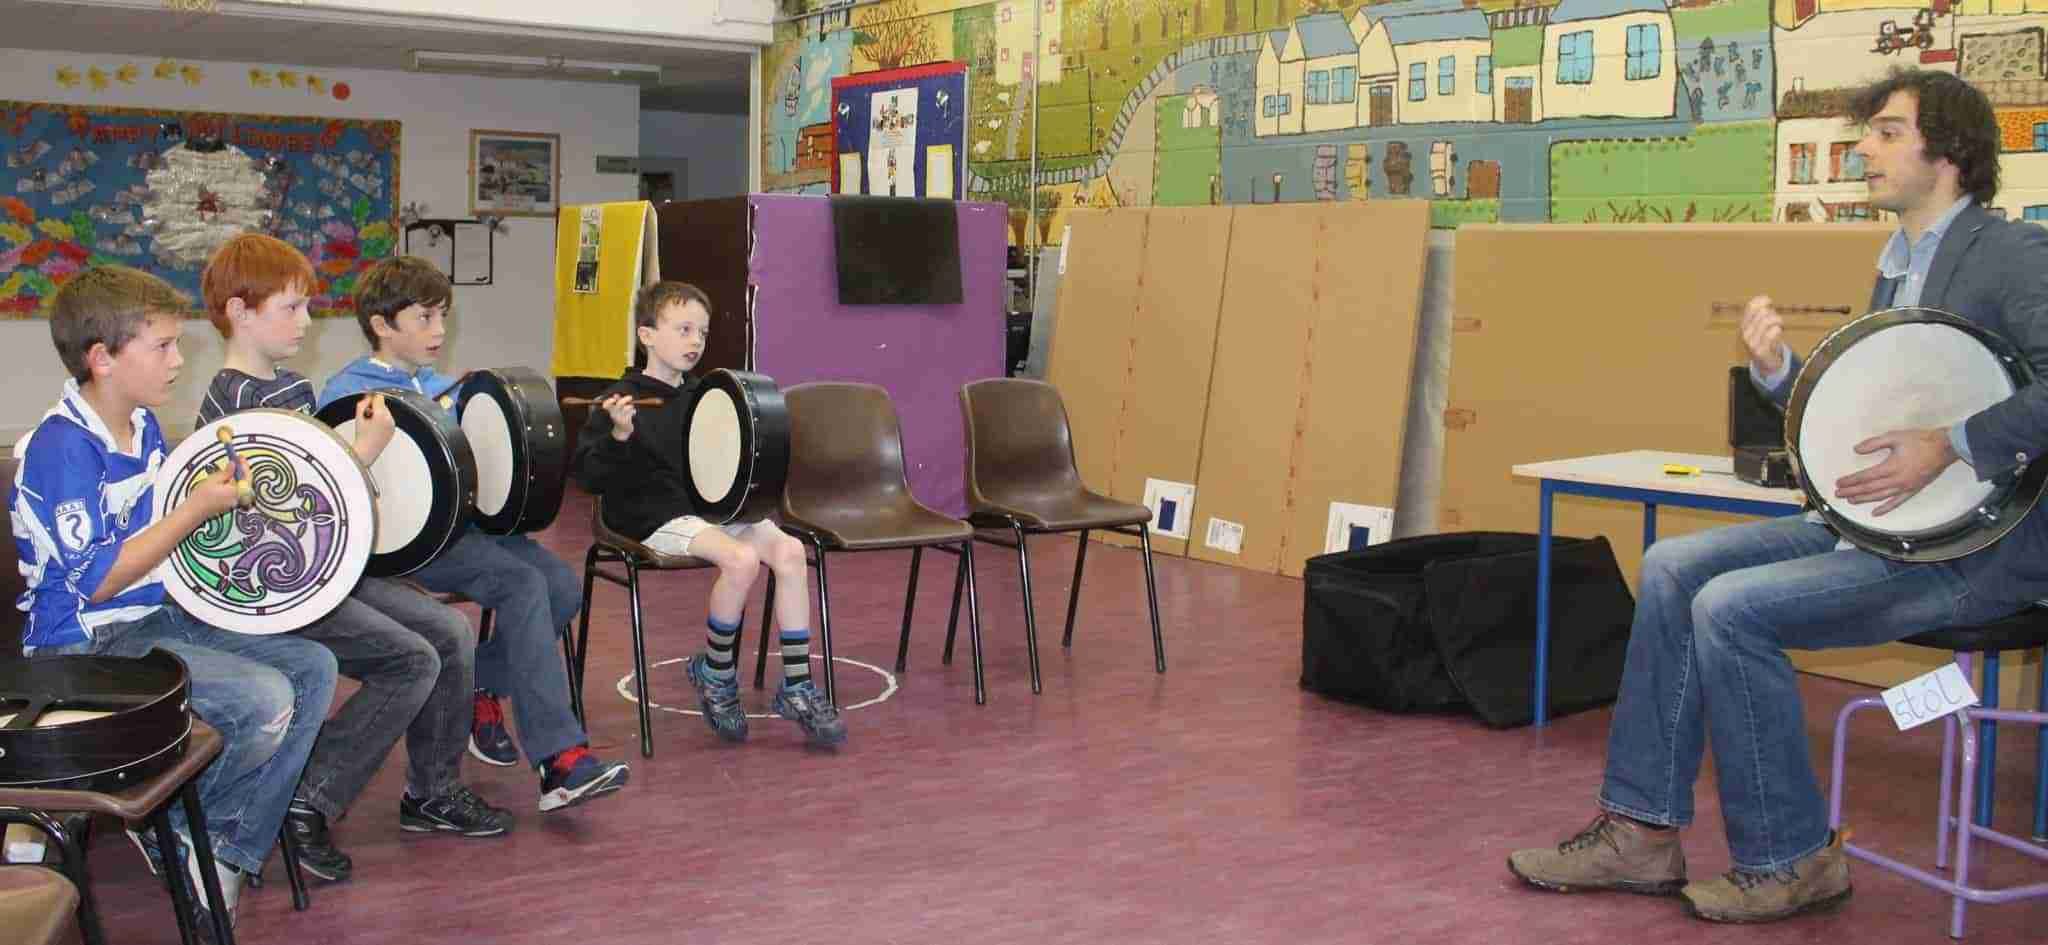 Bodhran Workshop Sallins